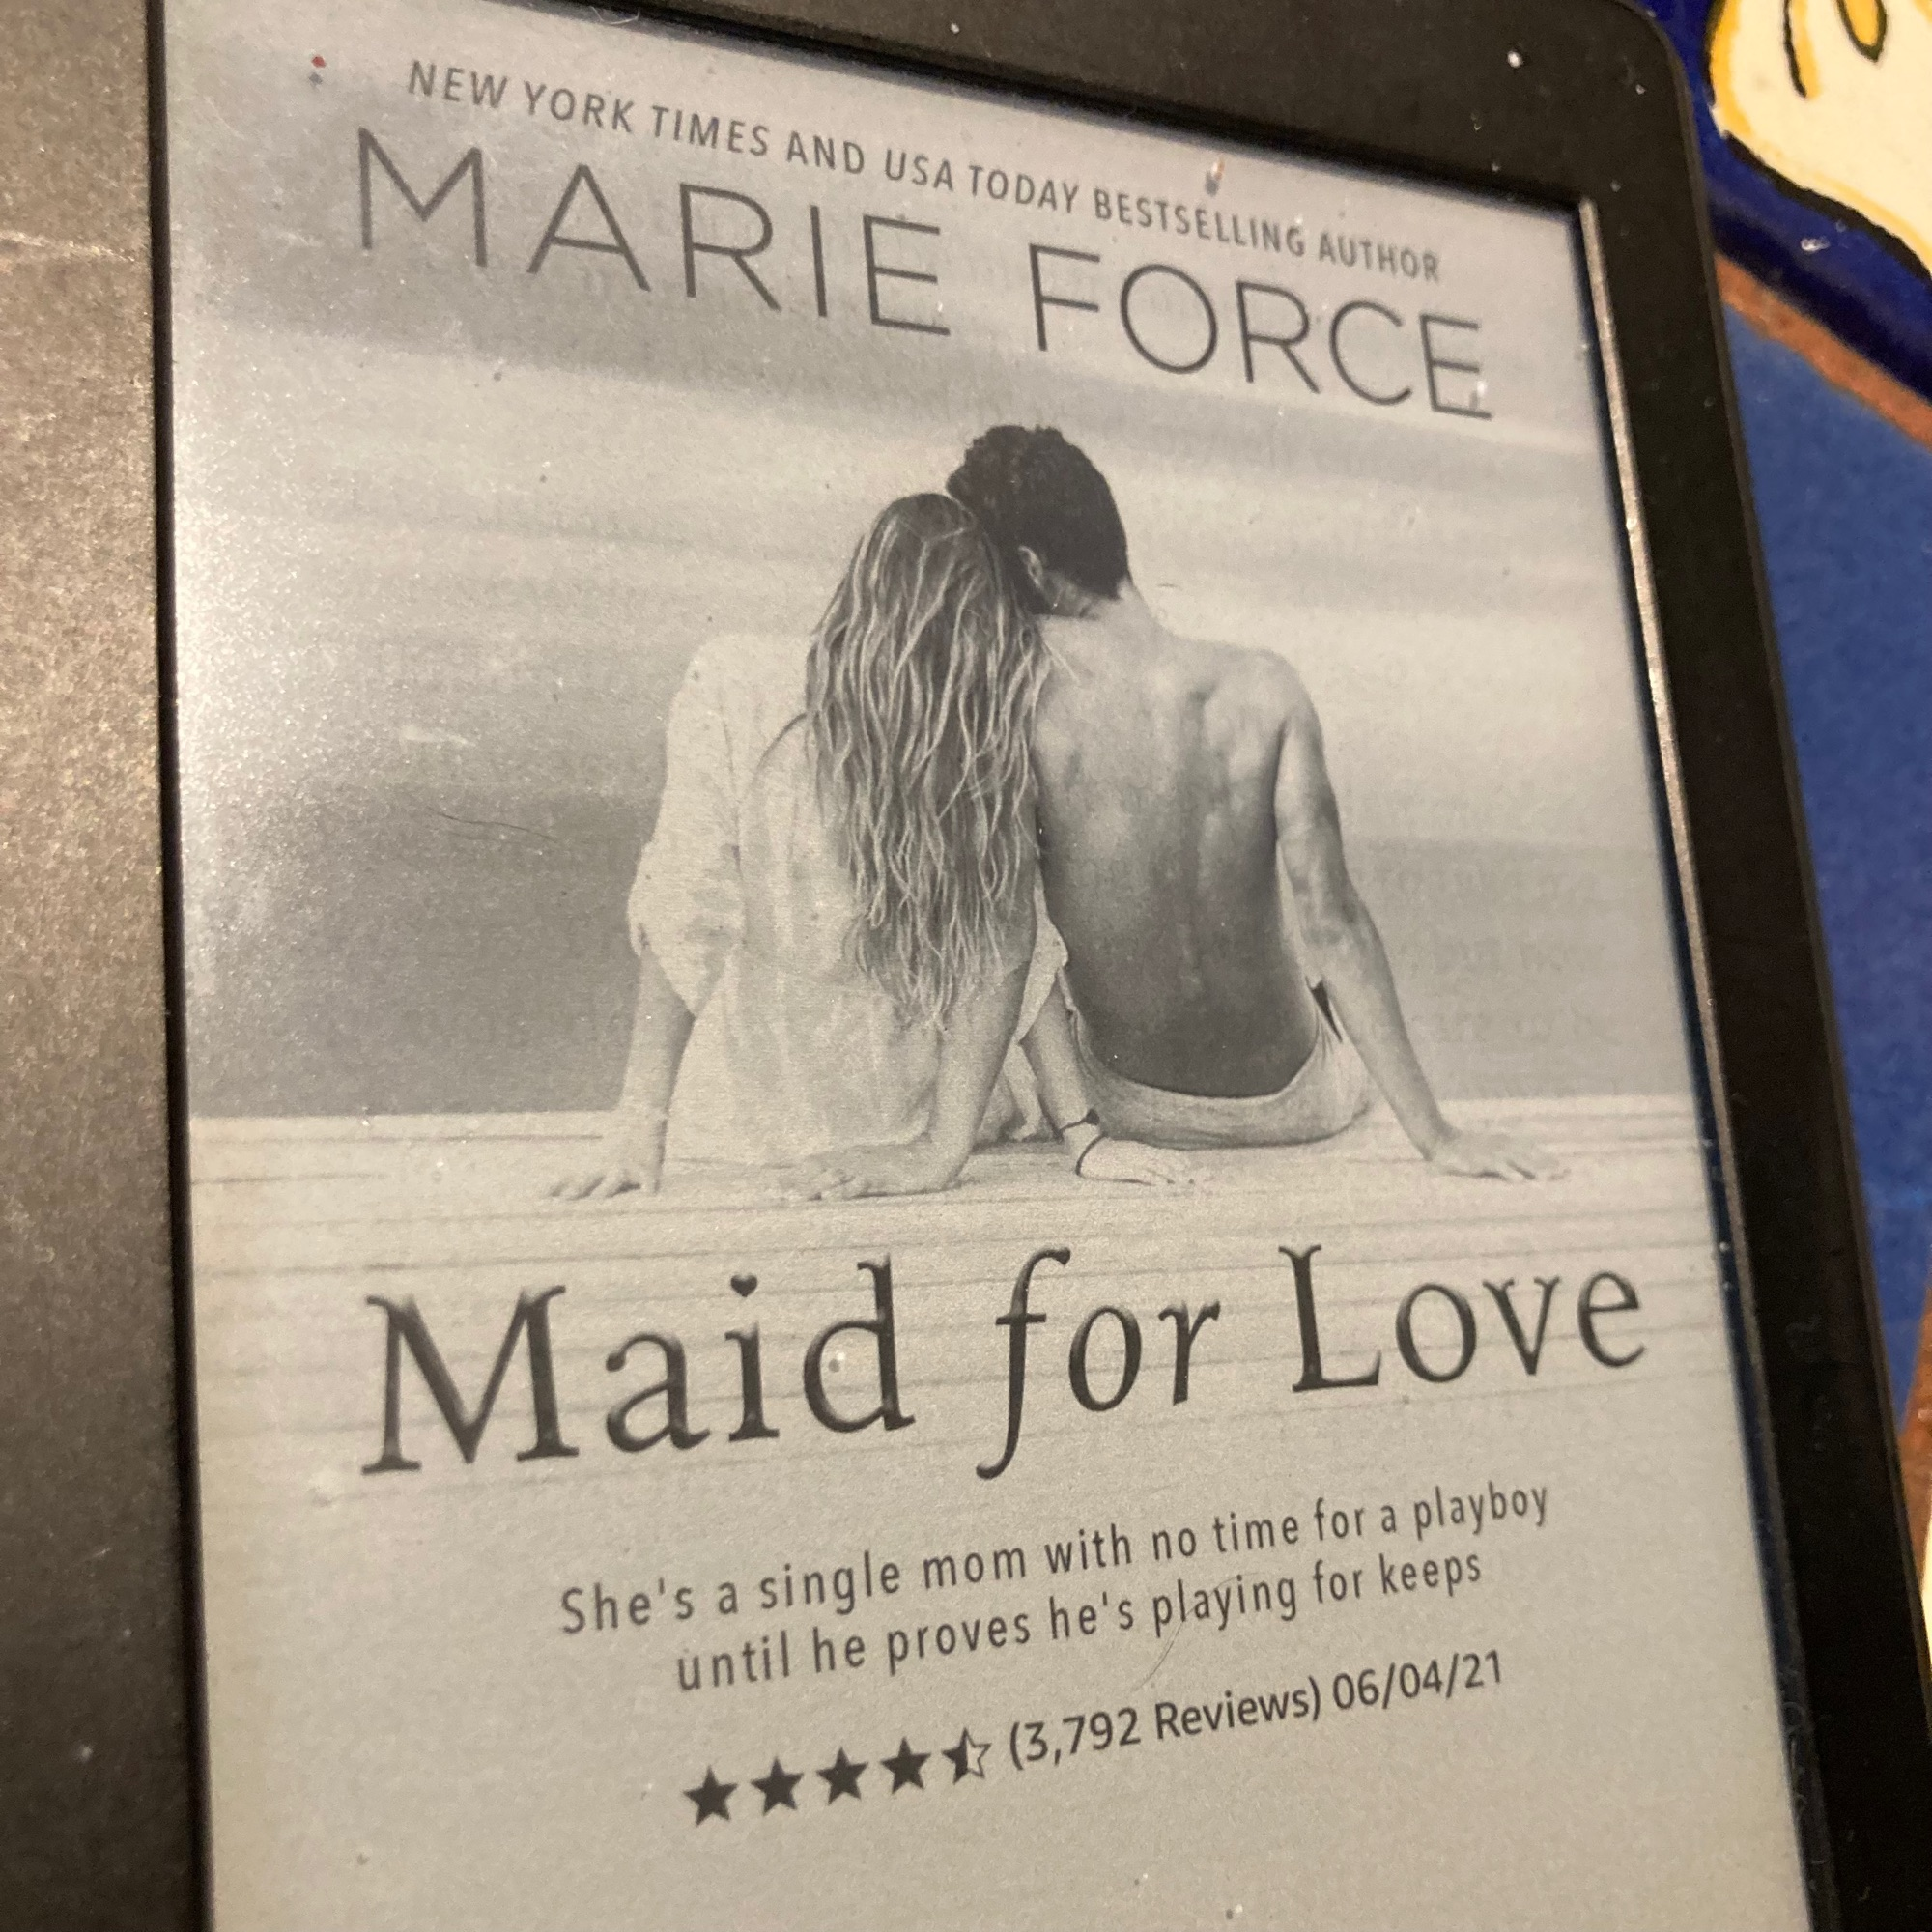 Not my next read. Sorry Marie.